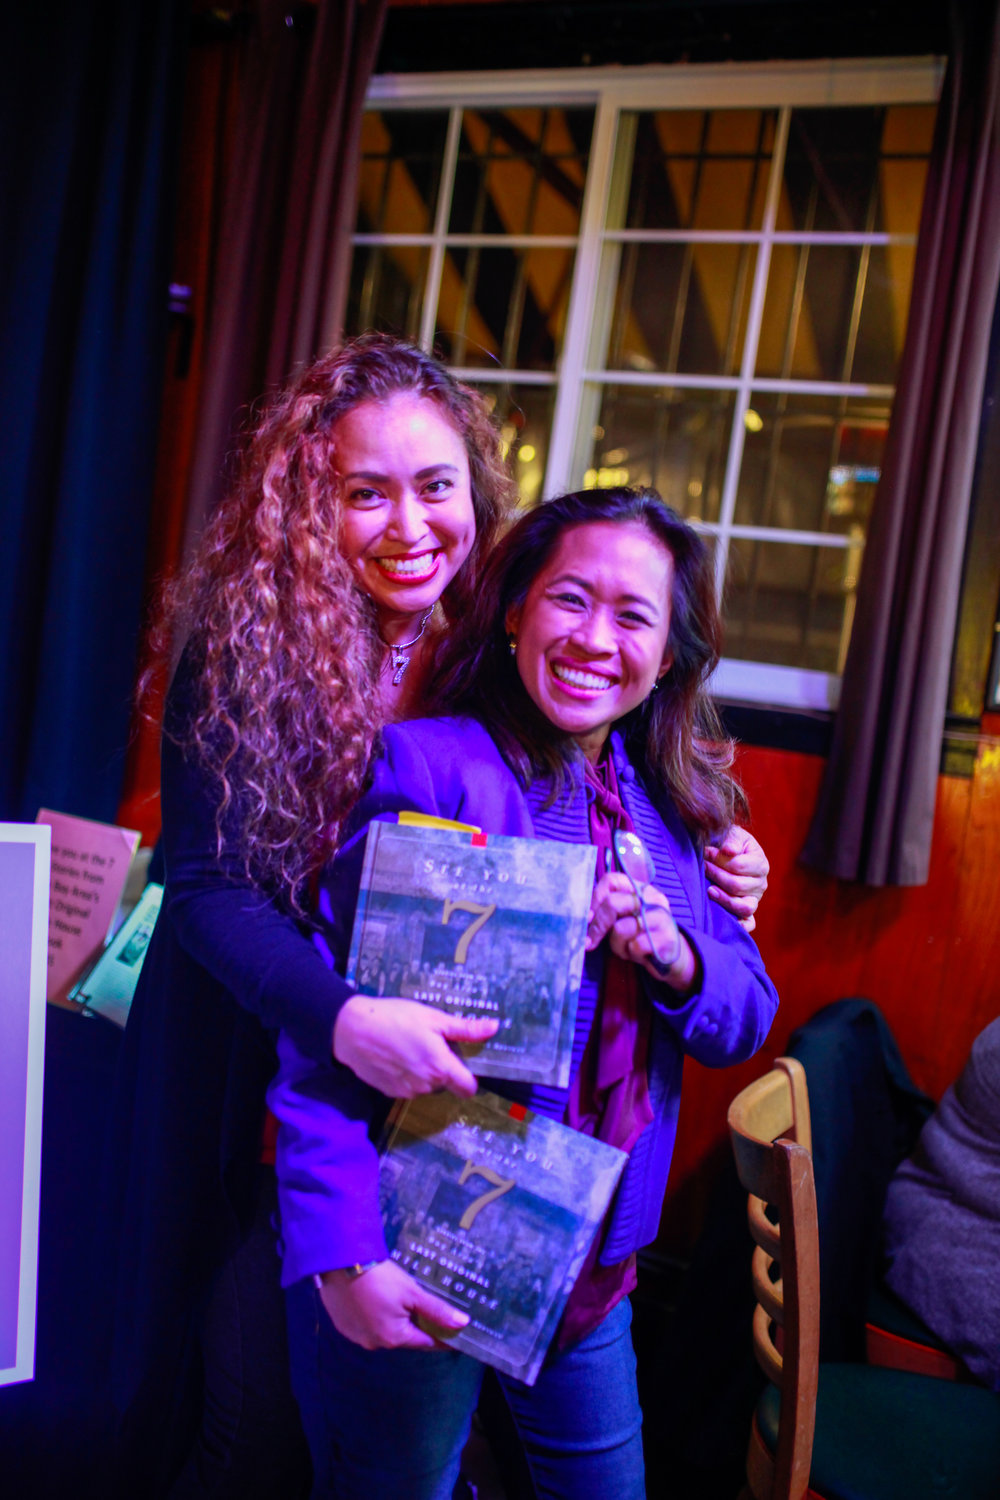 Vanessa Garcia and Regina Abuyuan, cousins and authors of the book 'See You at the 7'.